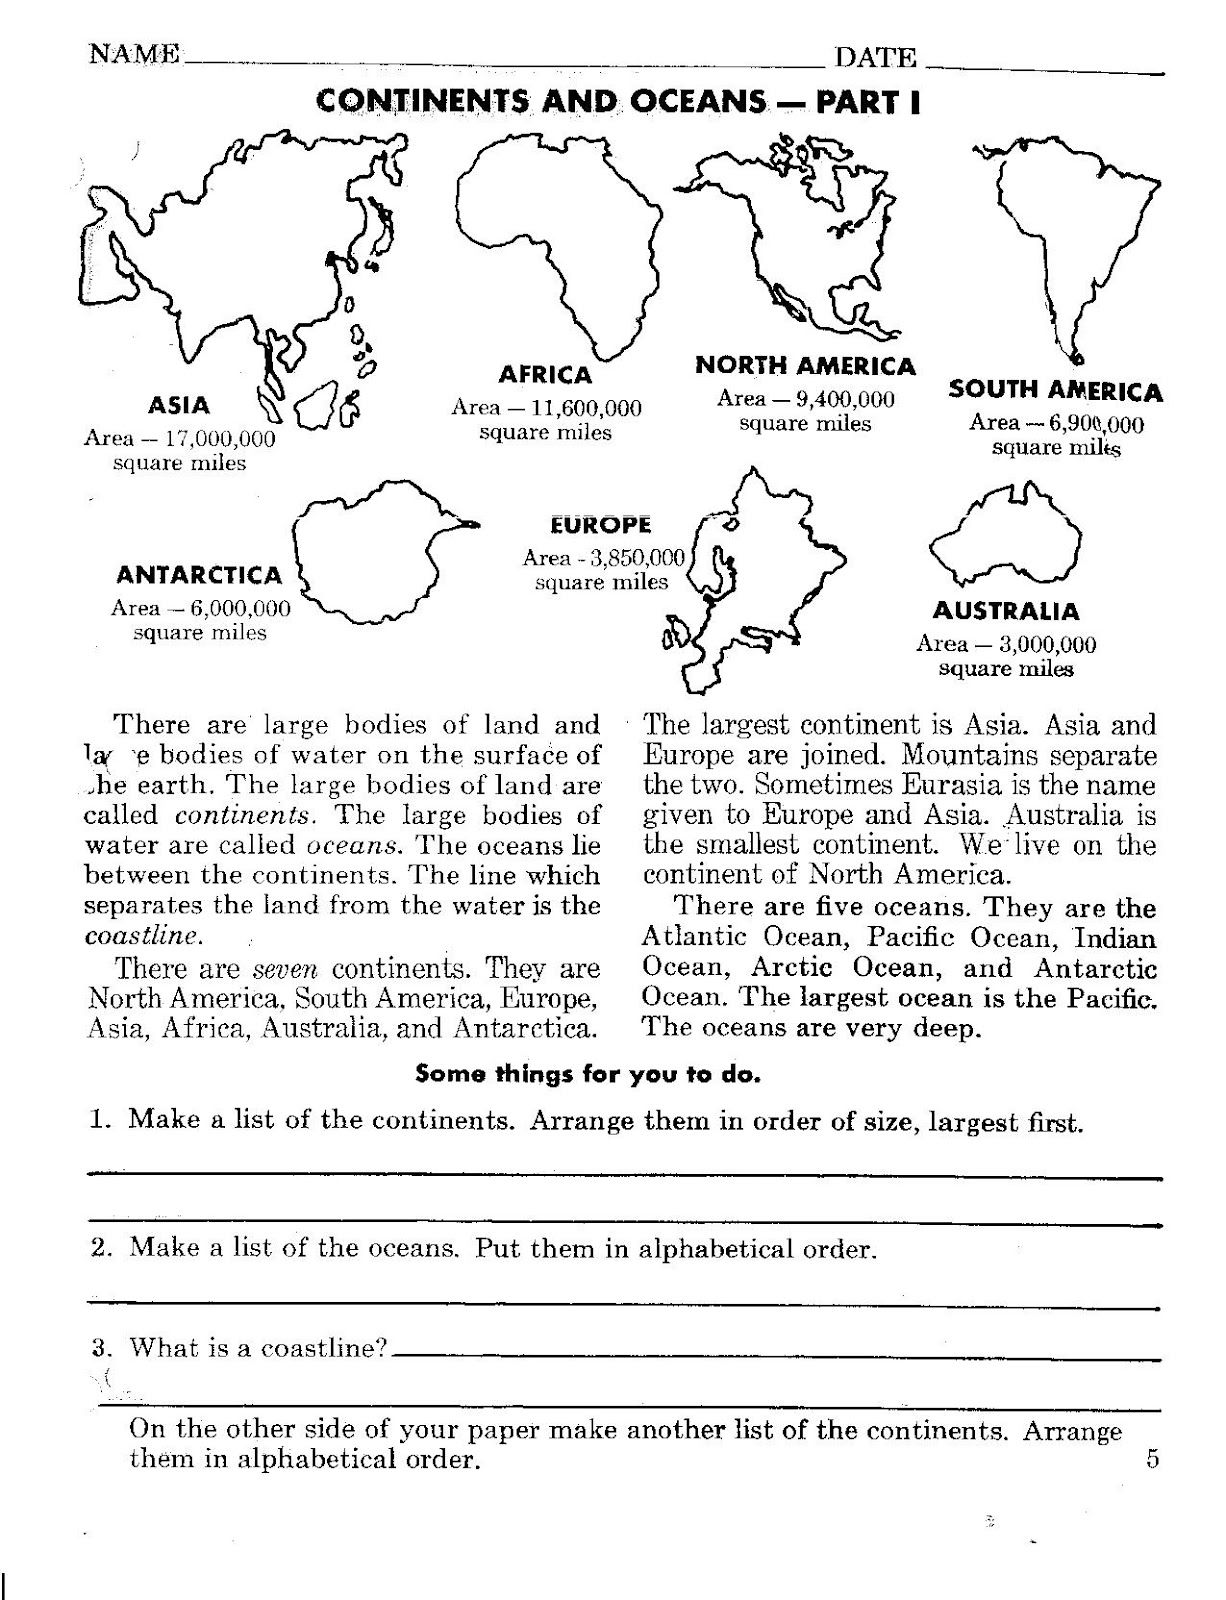 hight resolution of Continents and Oceans Worksheets   Continents and oceans